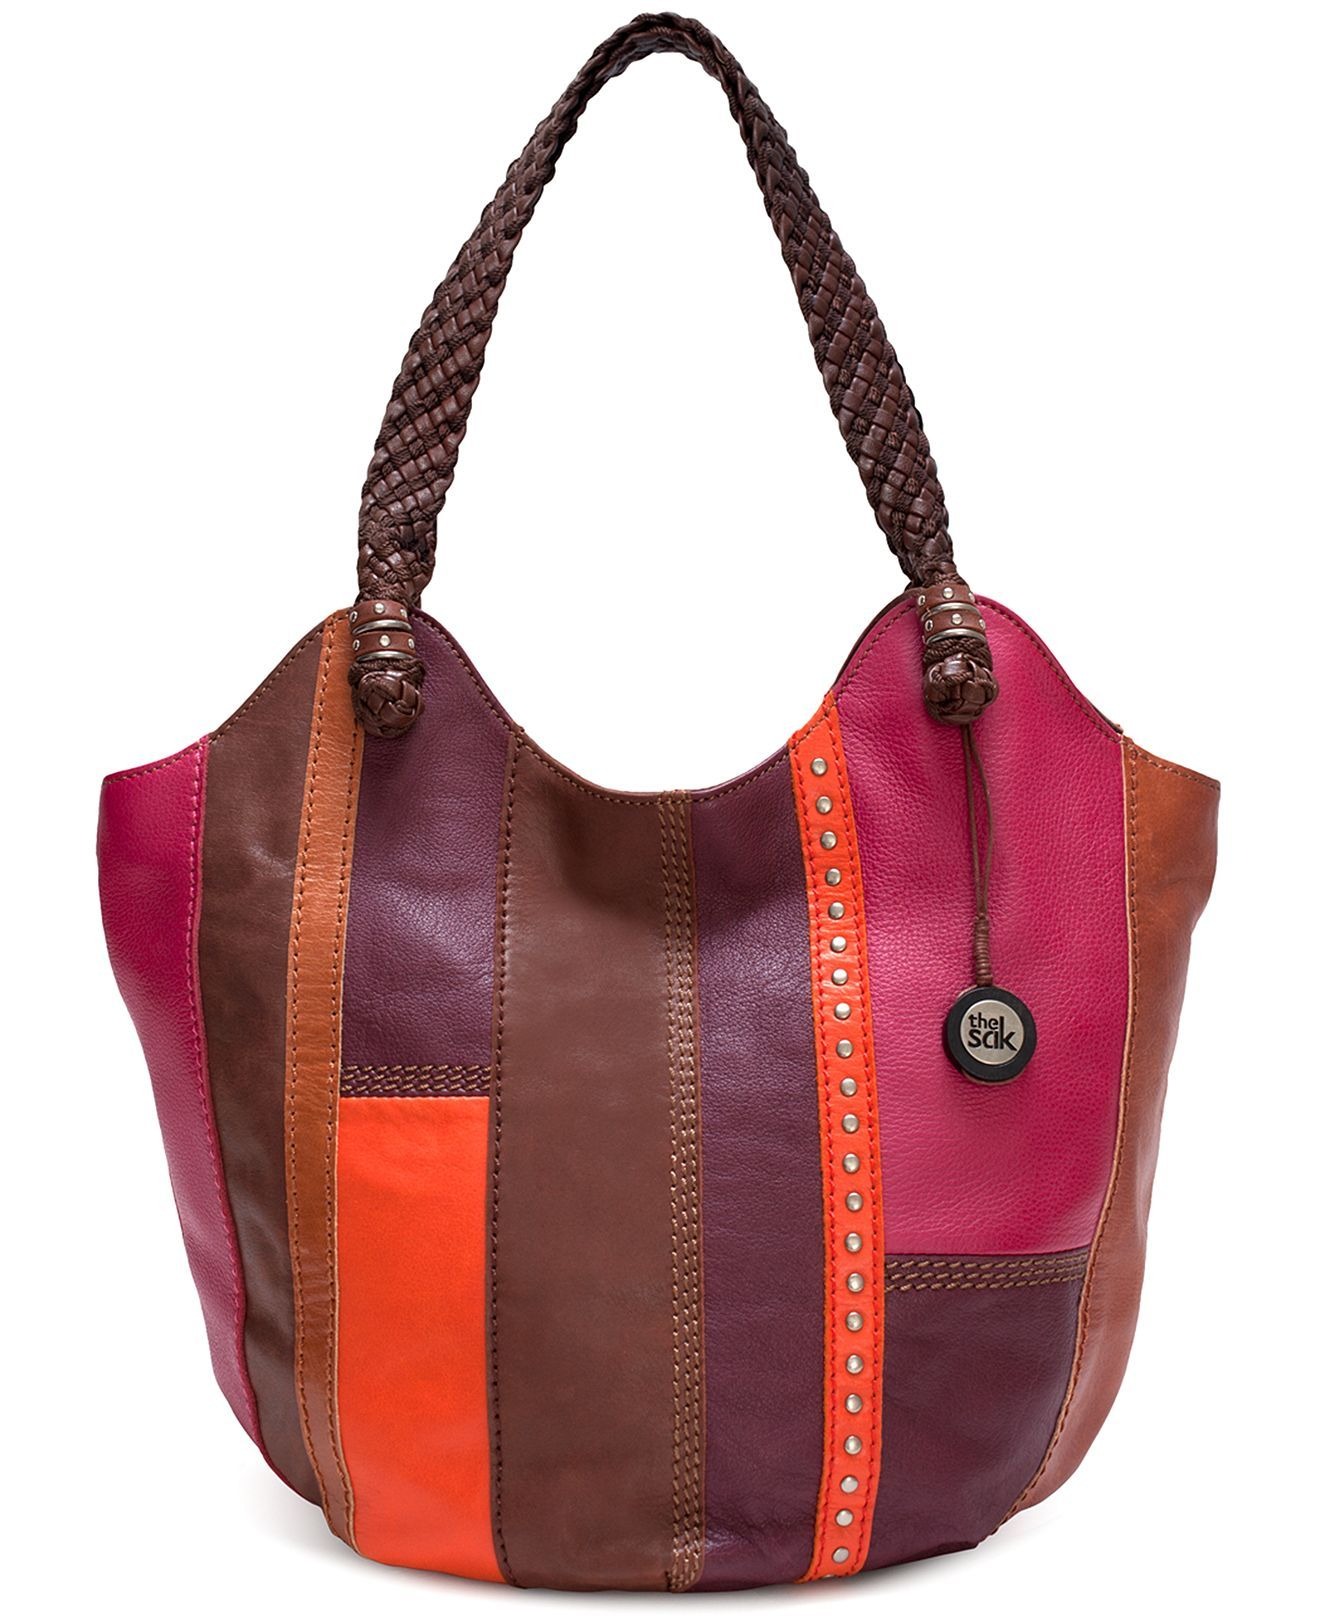 30841a5068 The Sak Handbag - when it s no longer a  wish  because you found it!...love!